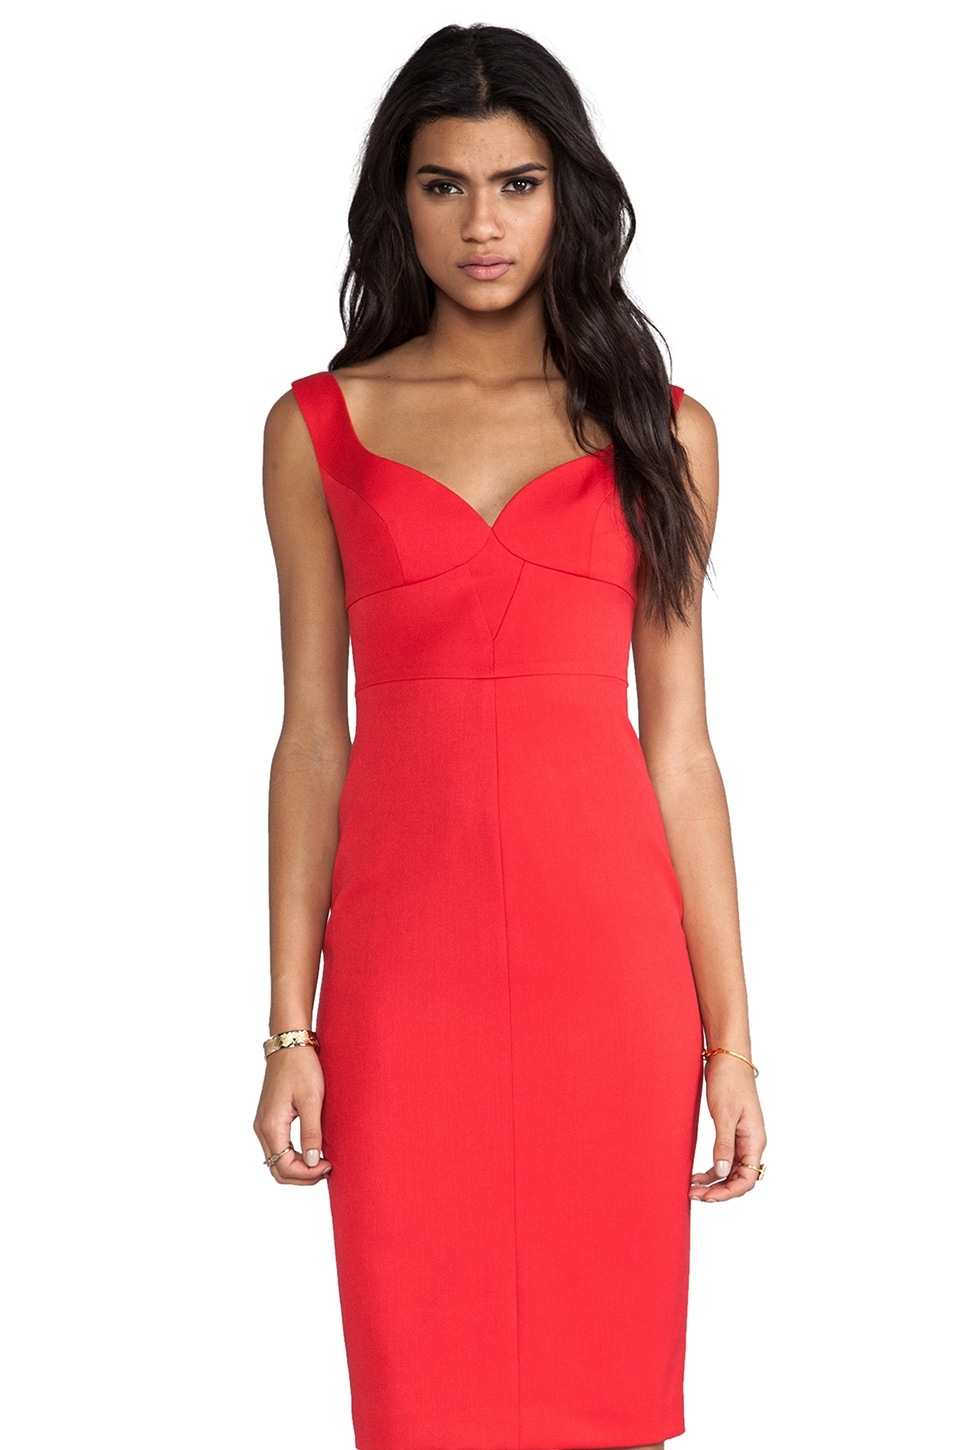 Black Halo Ally Sheath Dress in Red Lotus